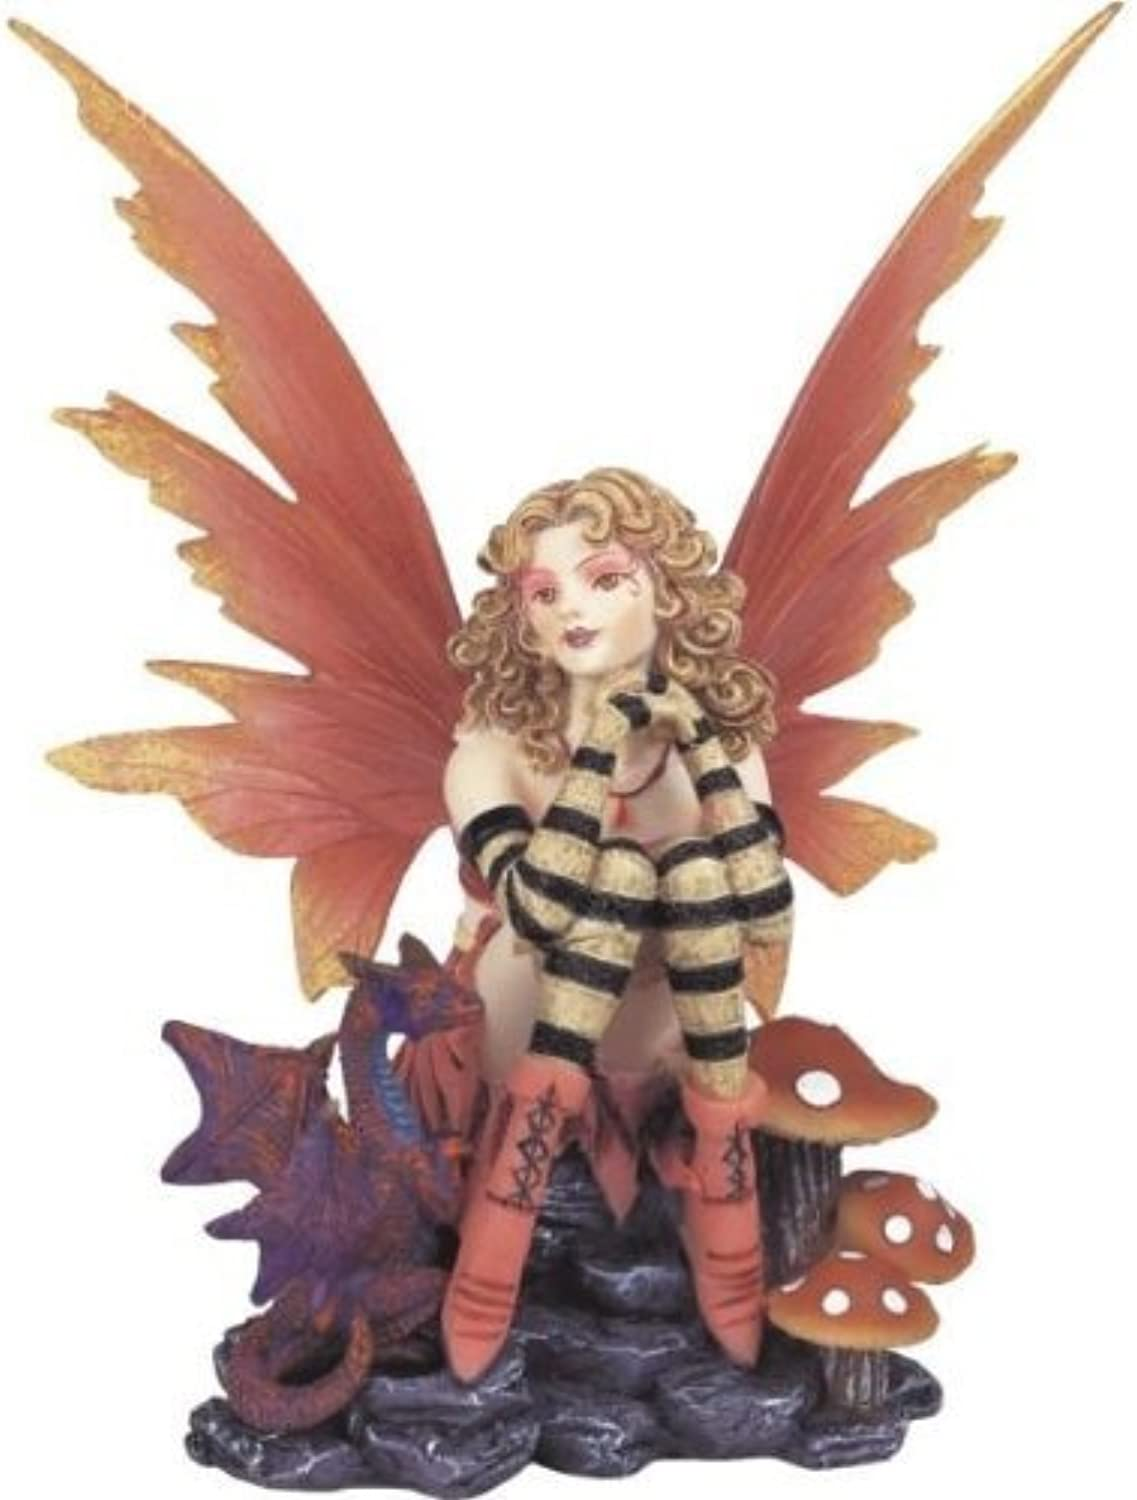 Fairy Collection Peach Pixie Desk Decoration Figurine Collectible by GSC